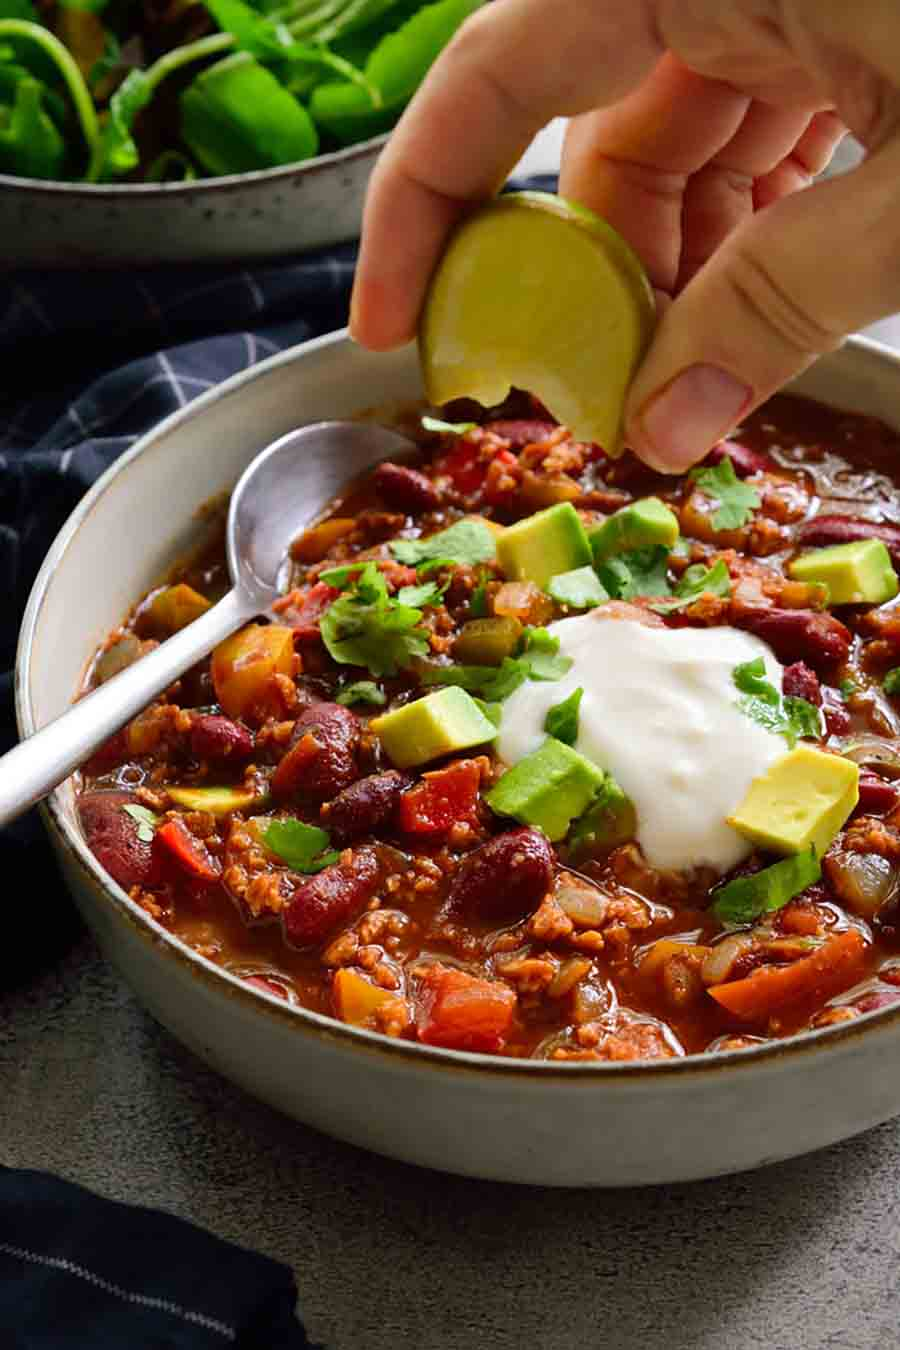 Bowl of chili with someone squeezing a lime on top